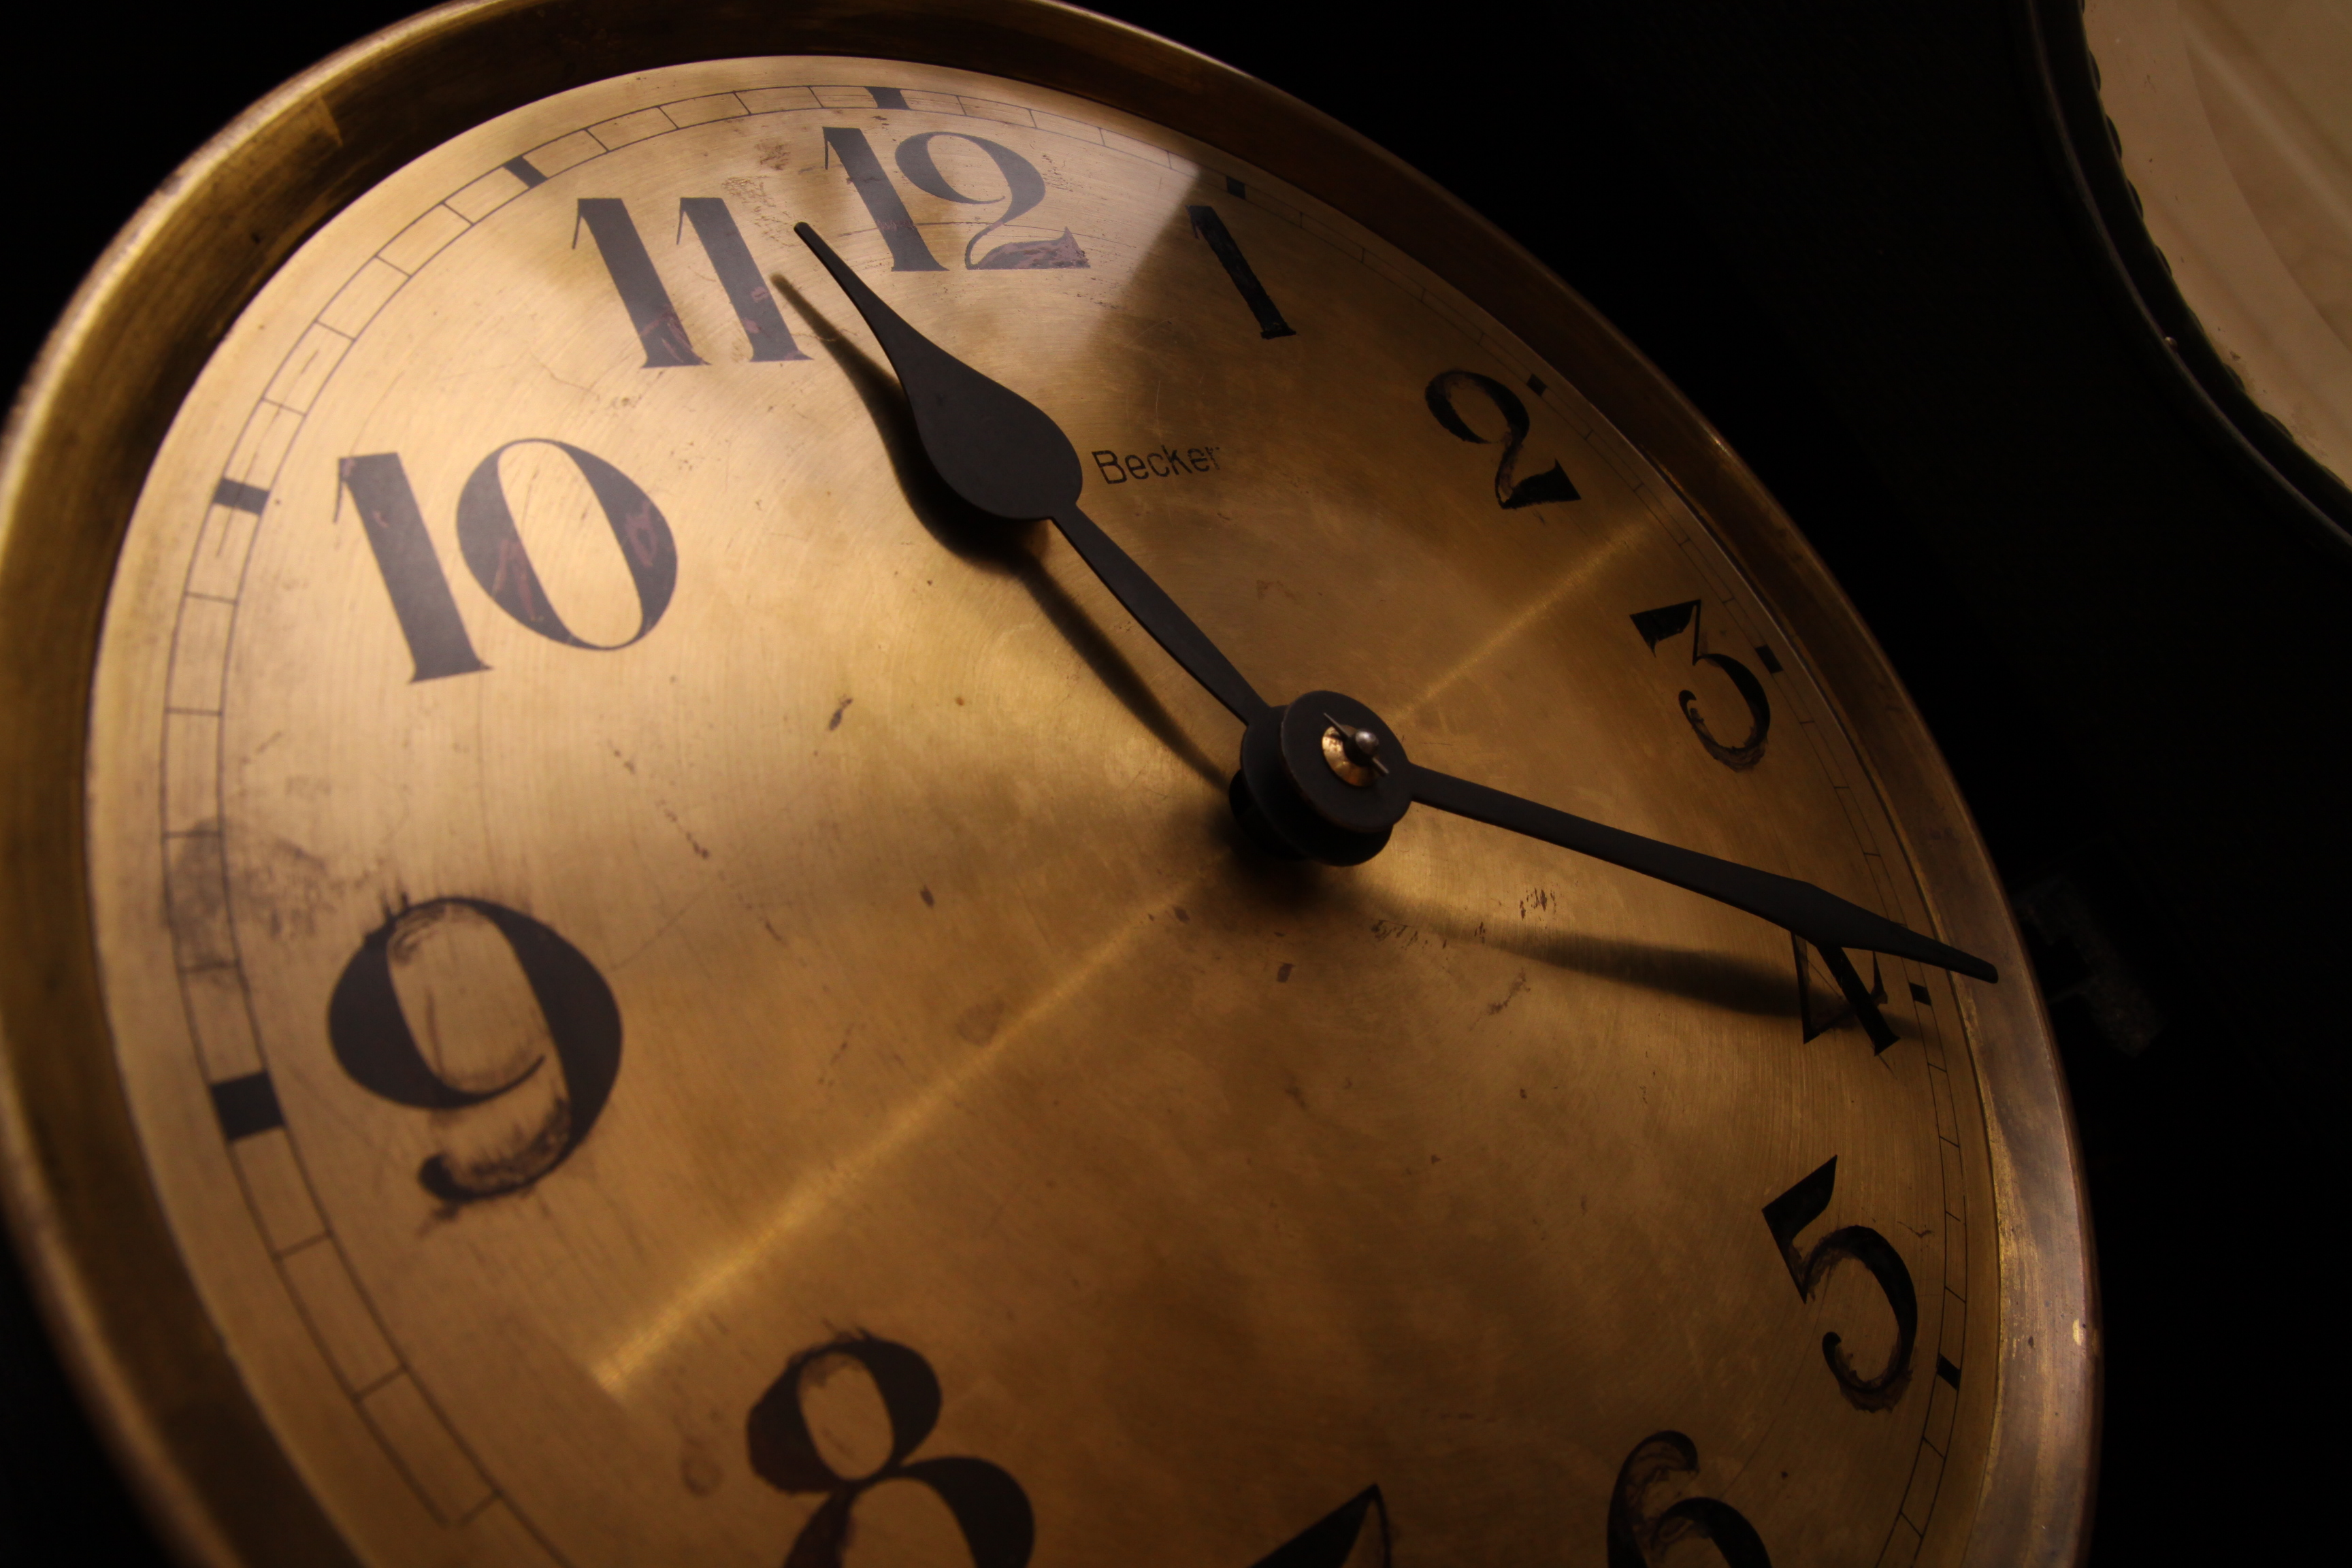 Your Body Clock: For Everything, There is a Time